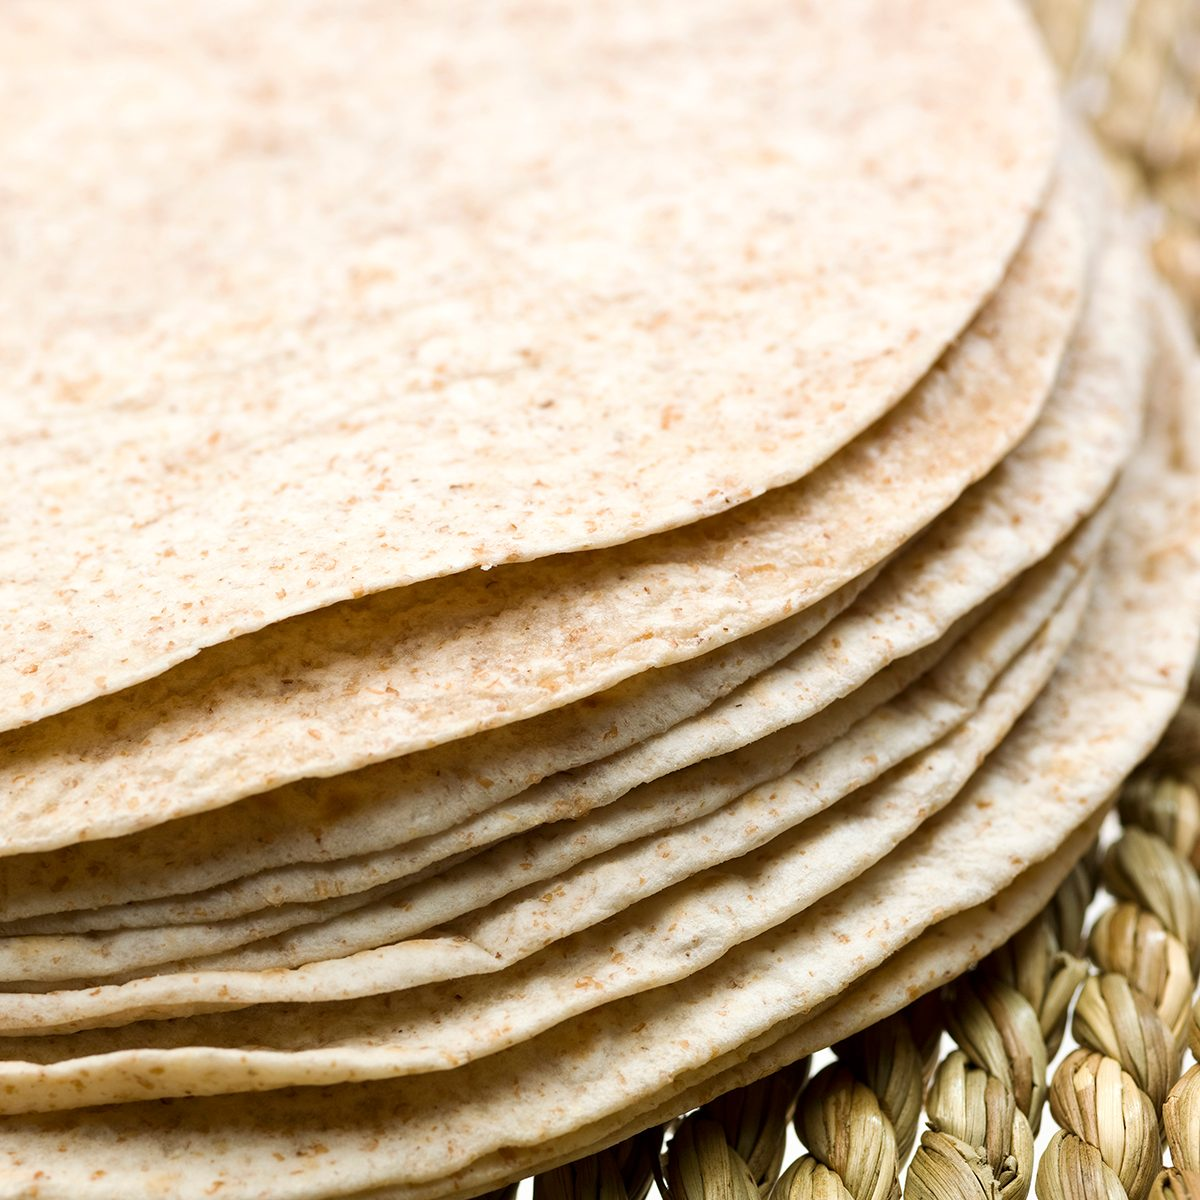 Stack of whole wheat Tortillas close up (this picture has been taken with a Hasselblad H3D II 31 megapixels camera)